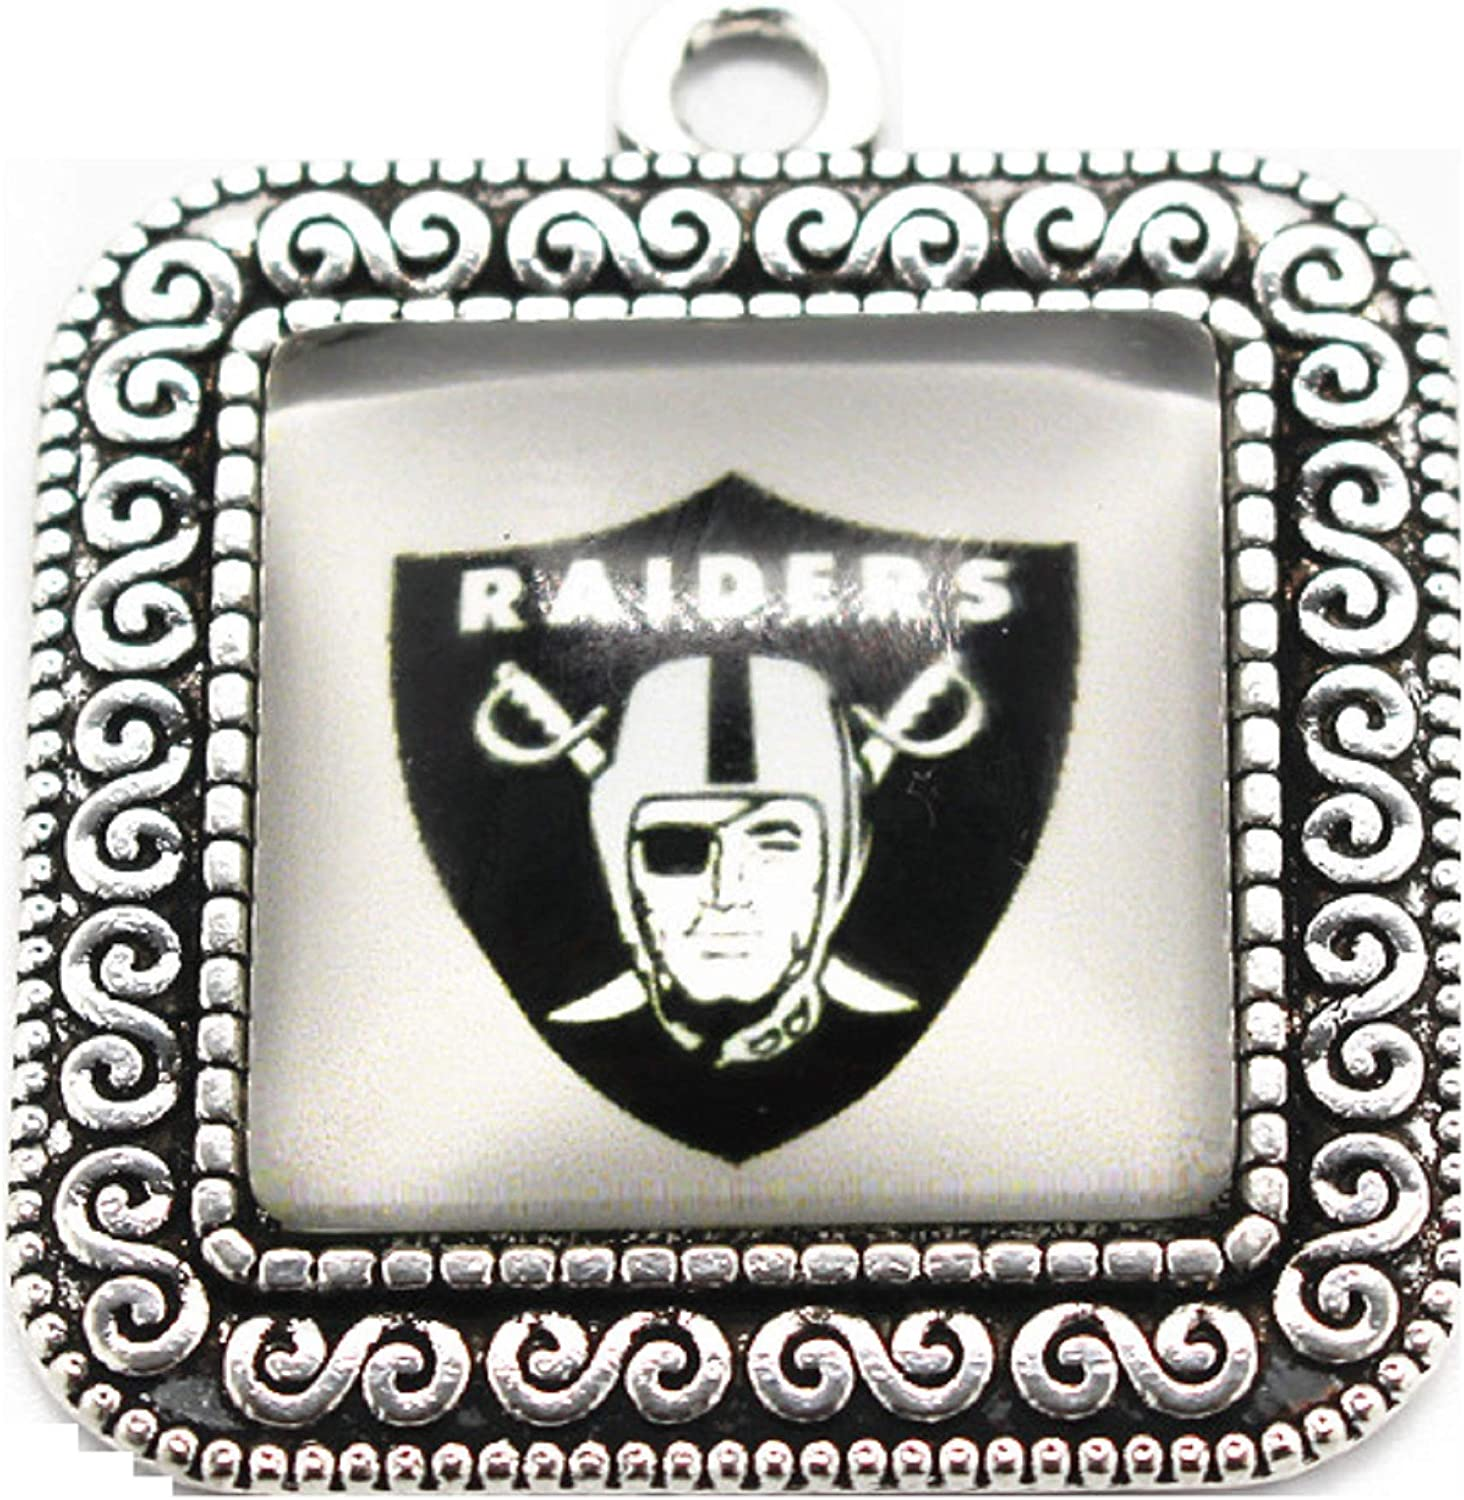 BAS Oakland Raiders Square Filial Charm with Glass Pendant for Bracelets or Necklaces 1 inch by 1 inch